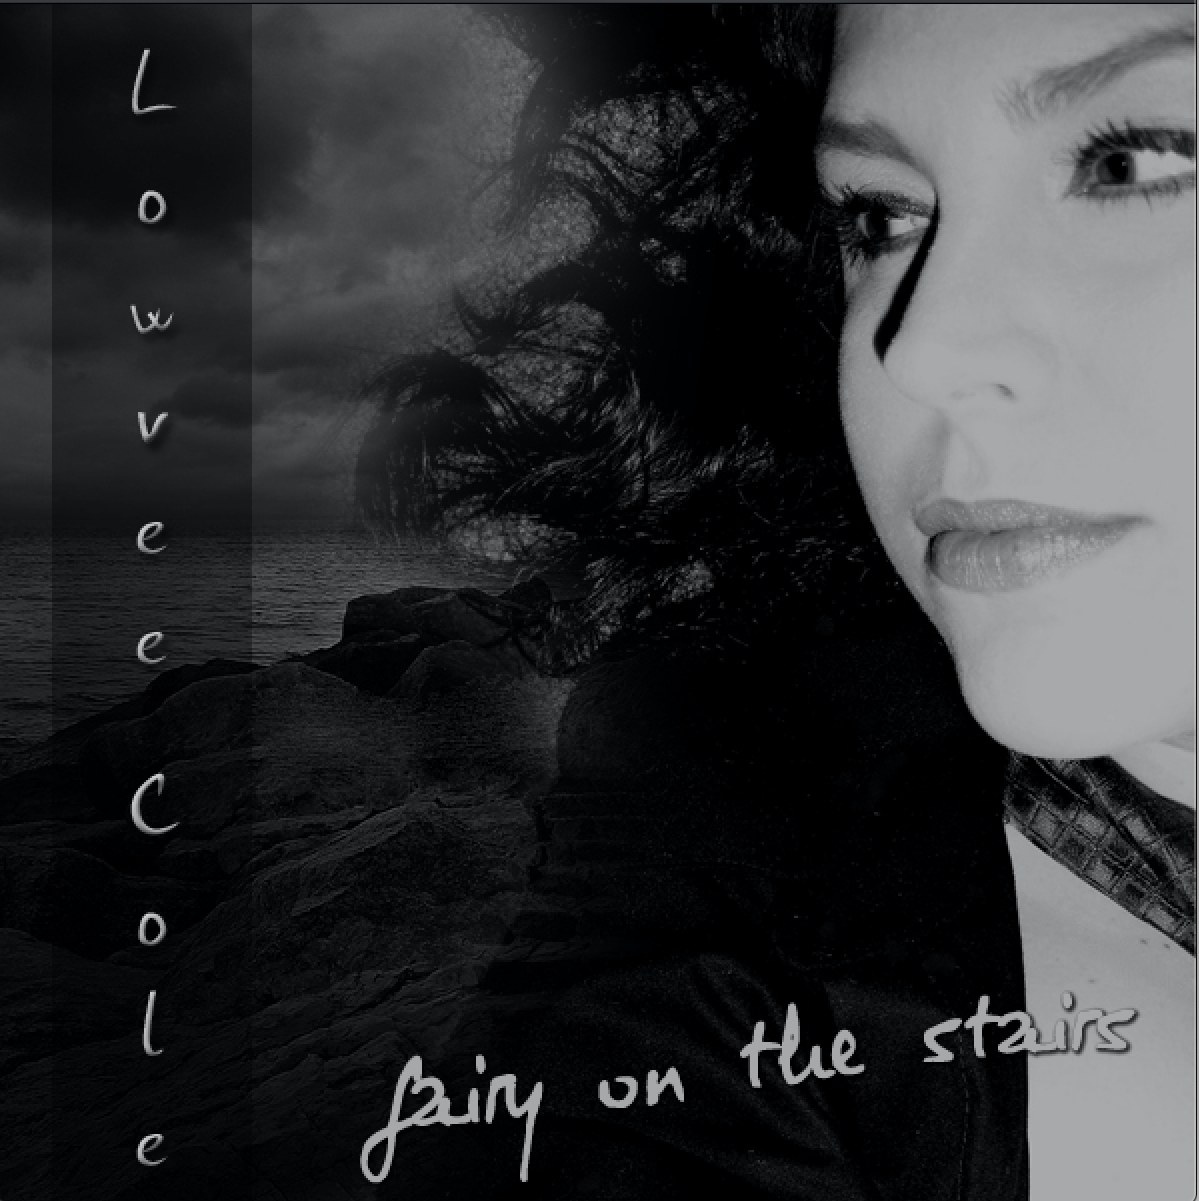 Fairy on the Stairs - LP featuring songs leaning on Euro Pop.